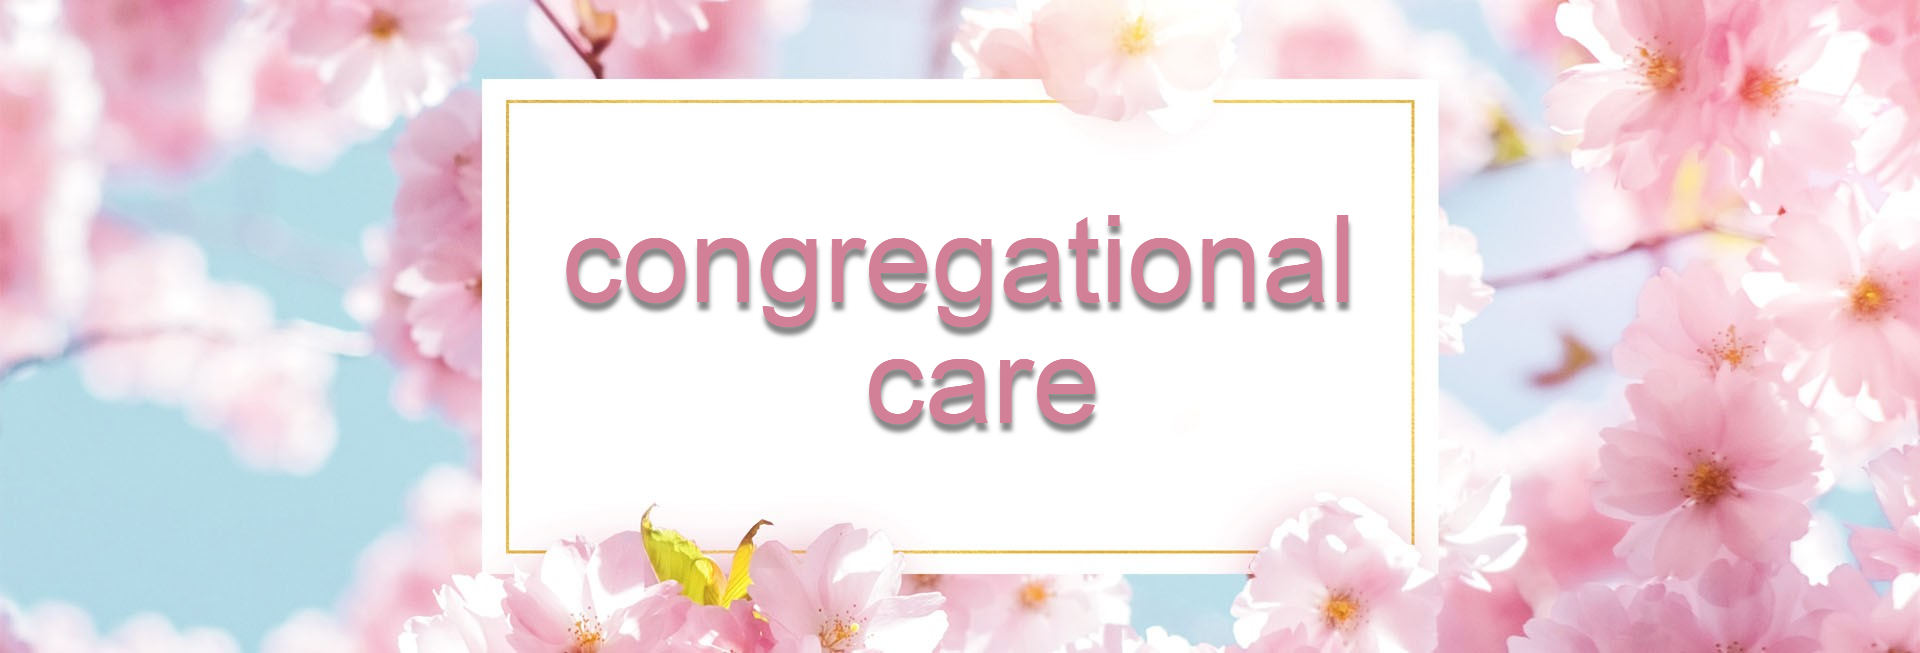 Mother's Day Cherry Blossom Church Website Banner